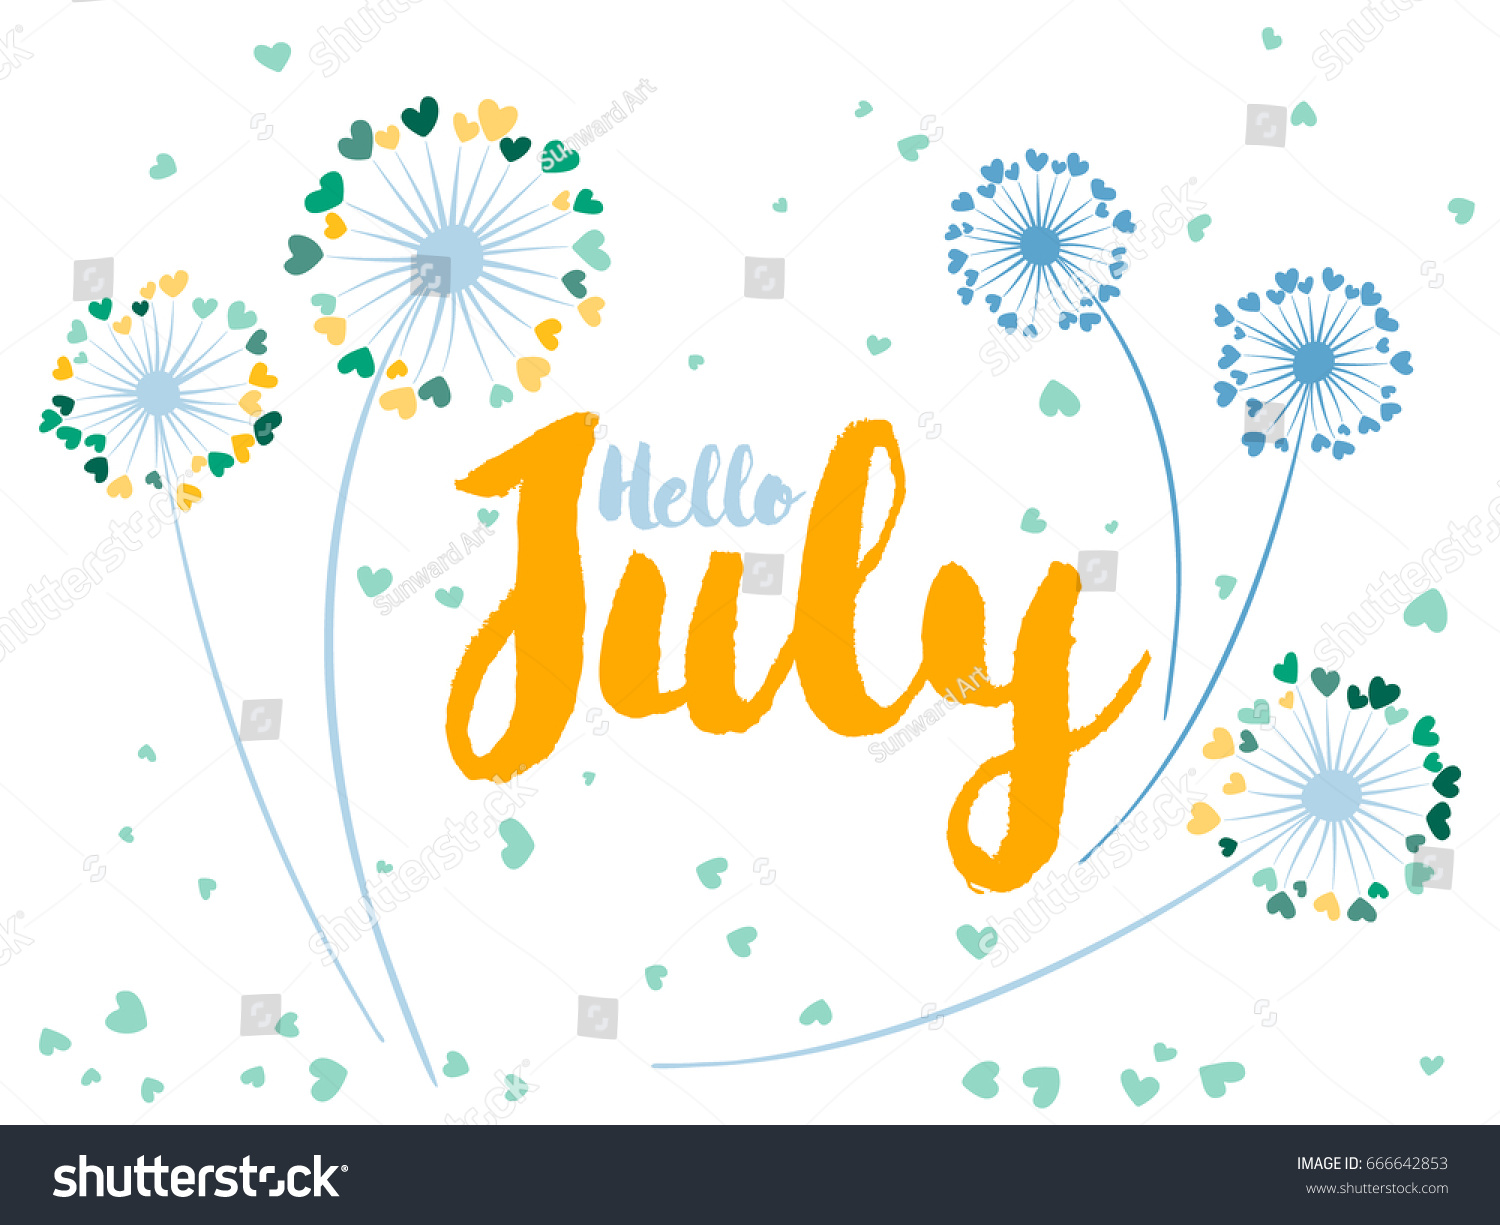 Hello July Vector Card Decorated By Dandelion Flowers With Heart Shaped  Feather Fluff. Colorful Illustration